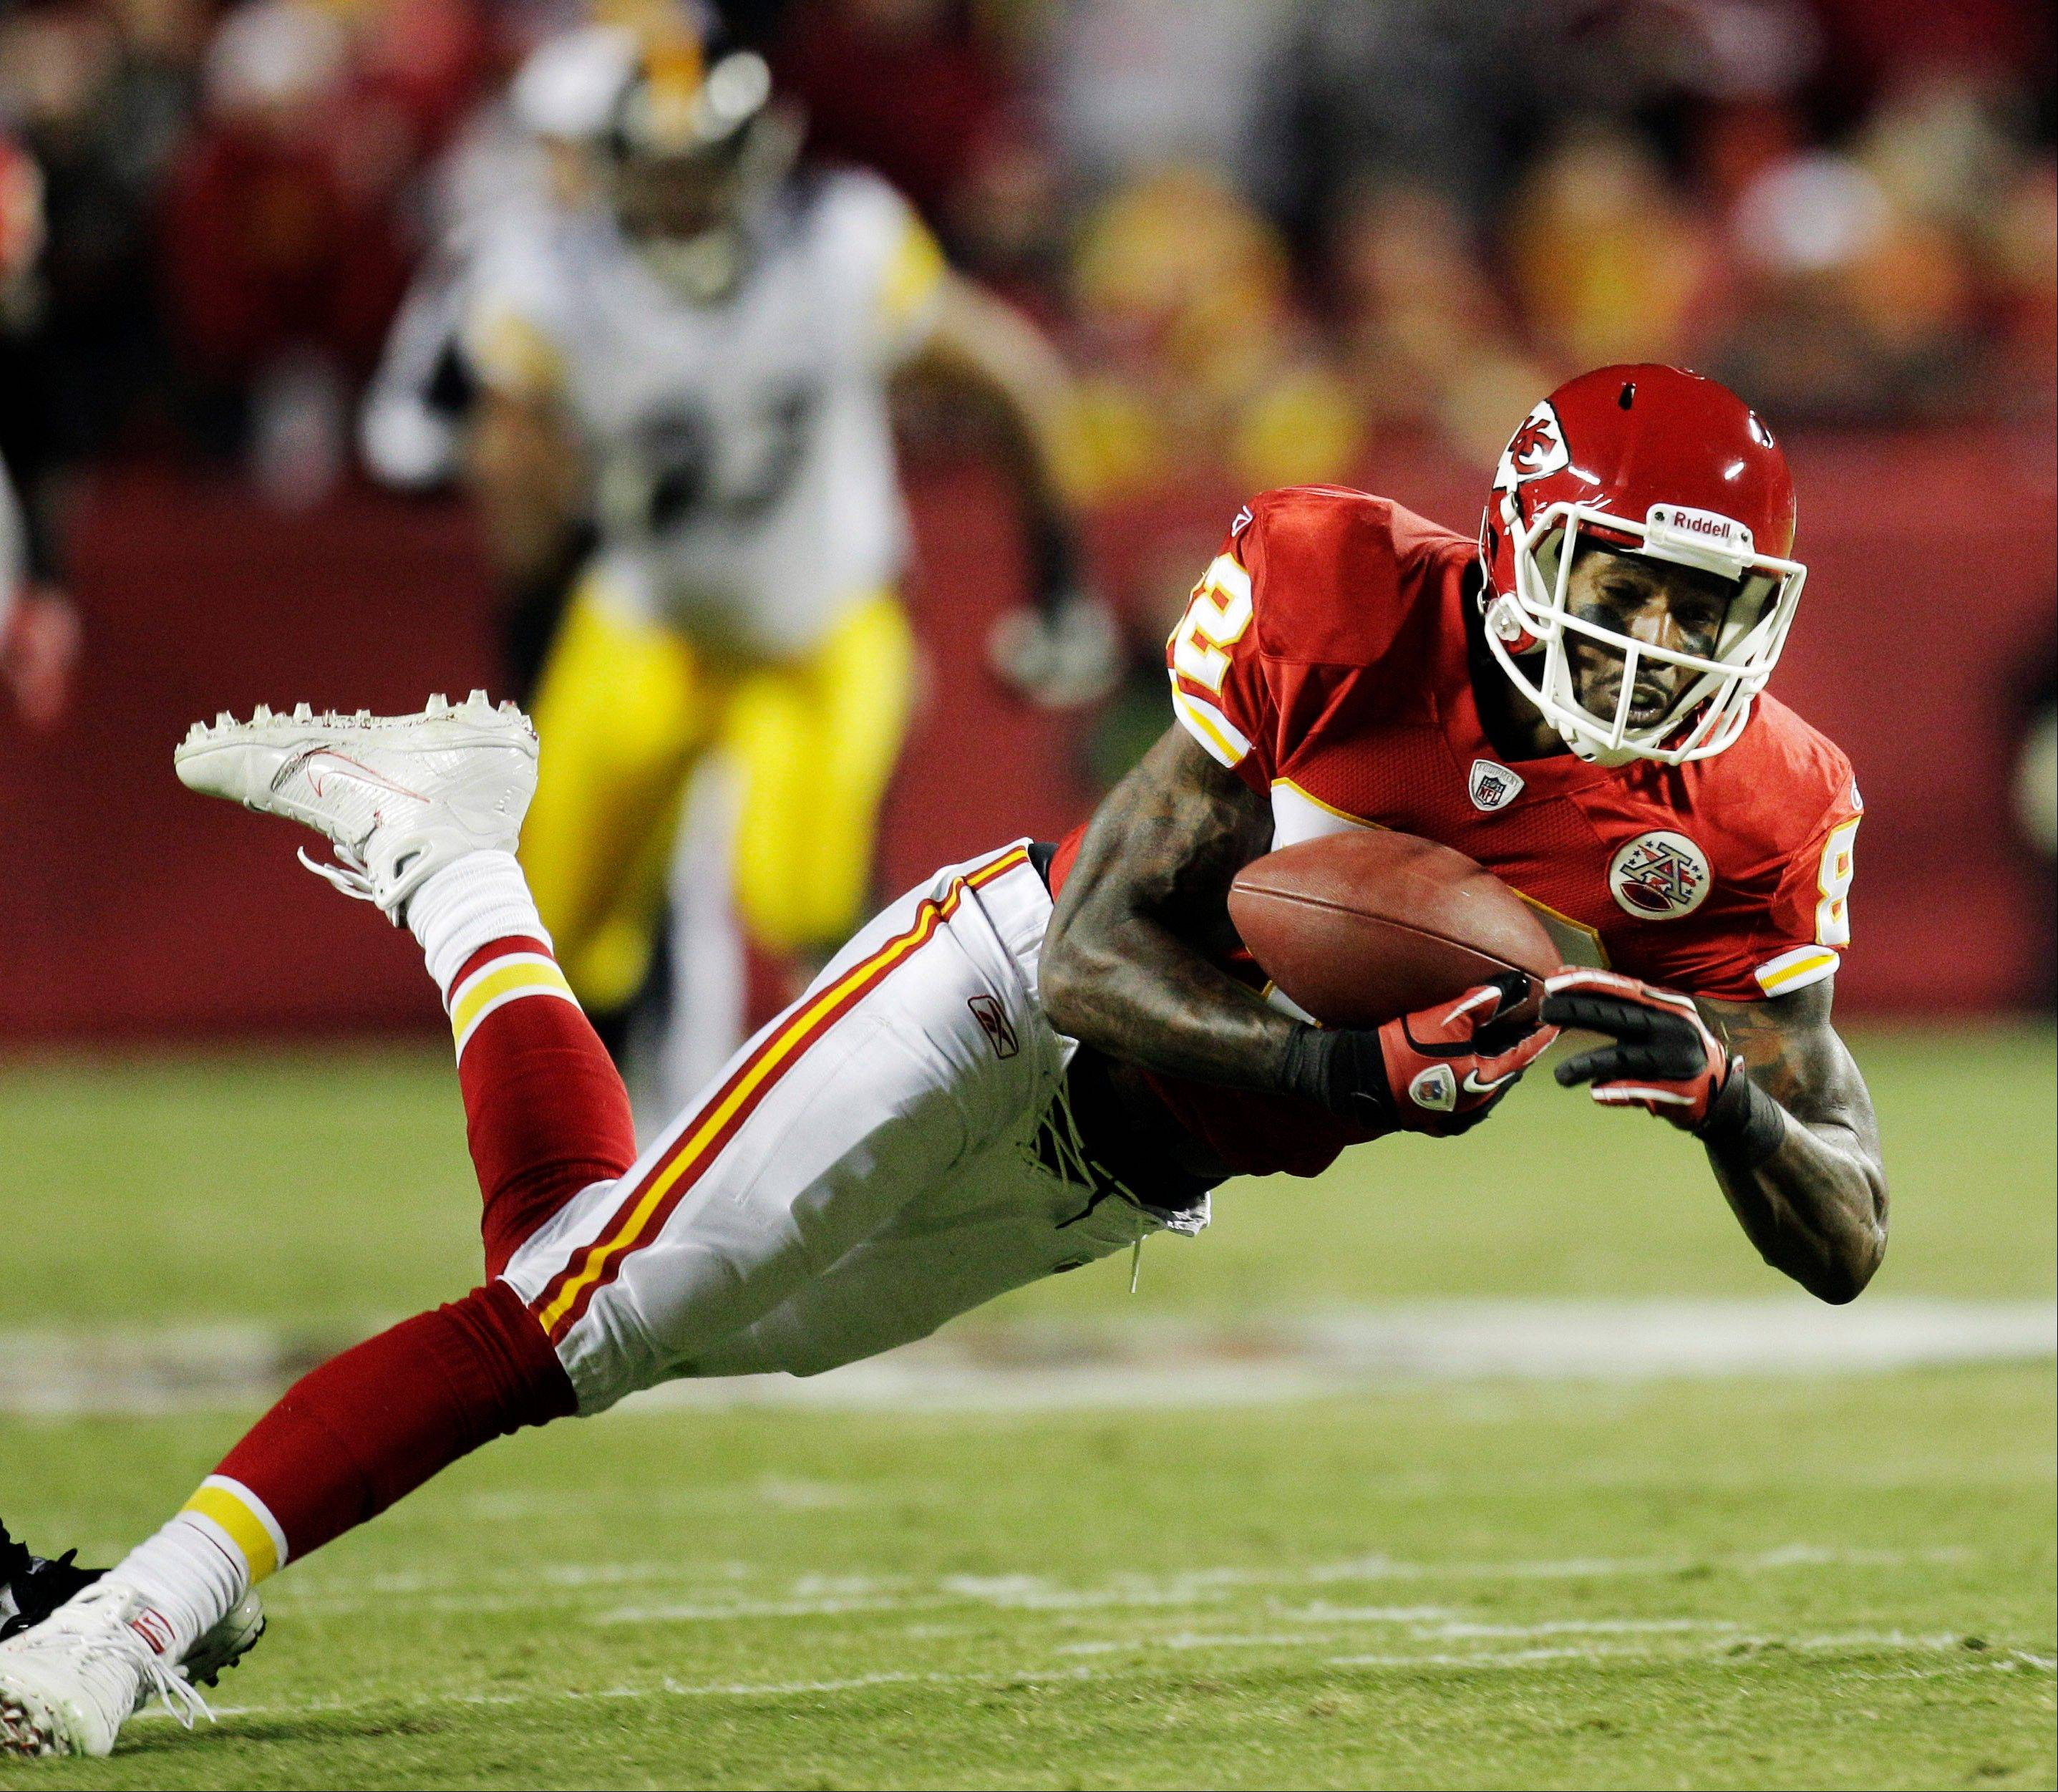 Chiefs WR Dwayne Bowe had just 1 catch for 4 yards in Week 3, leaving his fantasy owners with the dreaded goose egg.